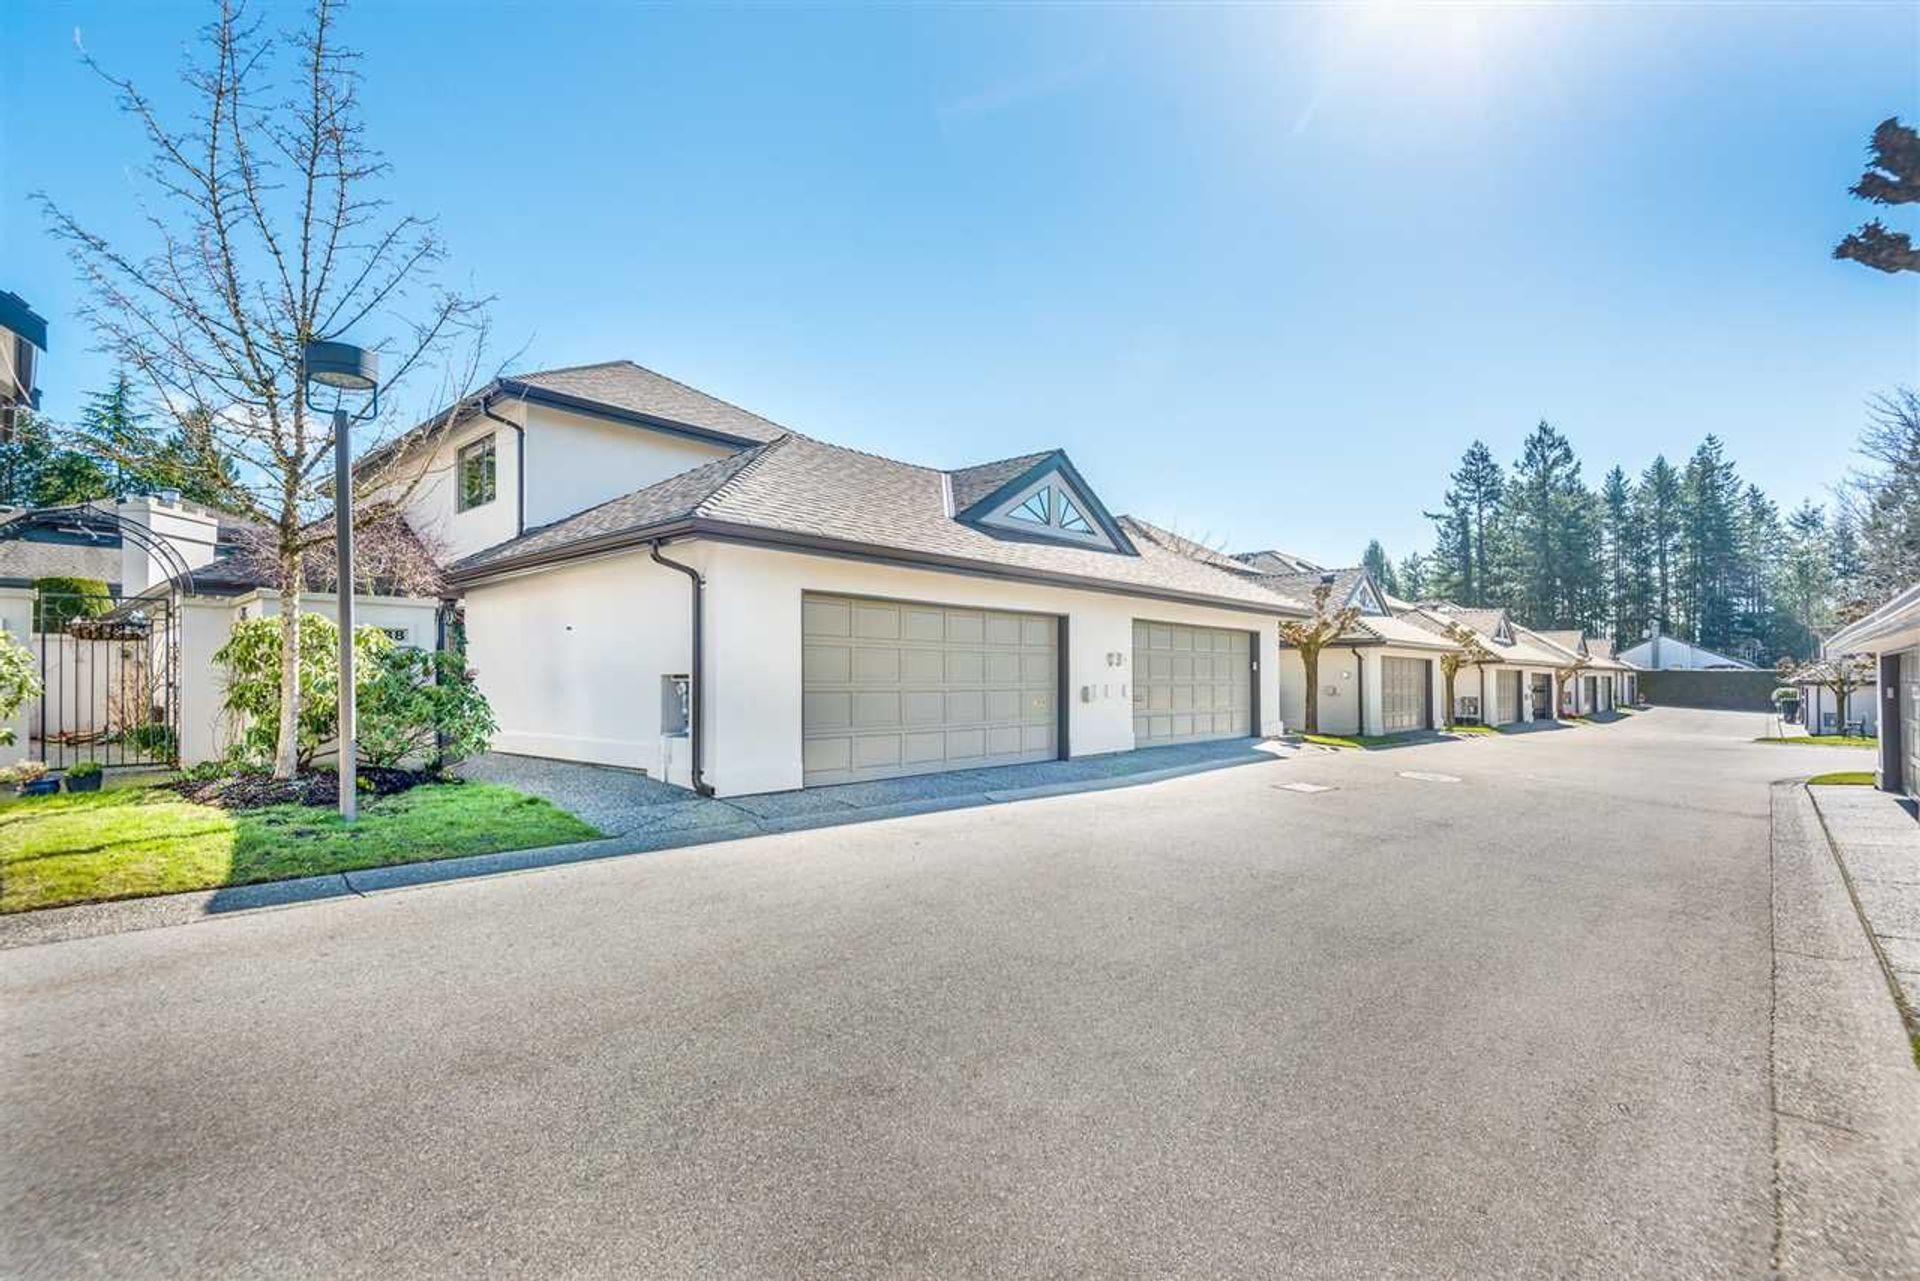 138 - 1770 128 Street, Crescent Bch Ocean Pk., South Surrey White Rock